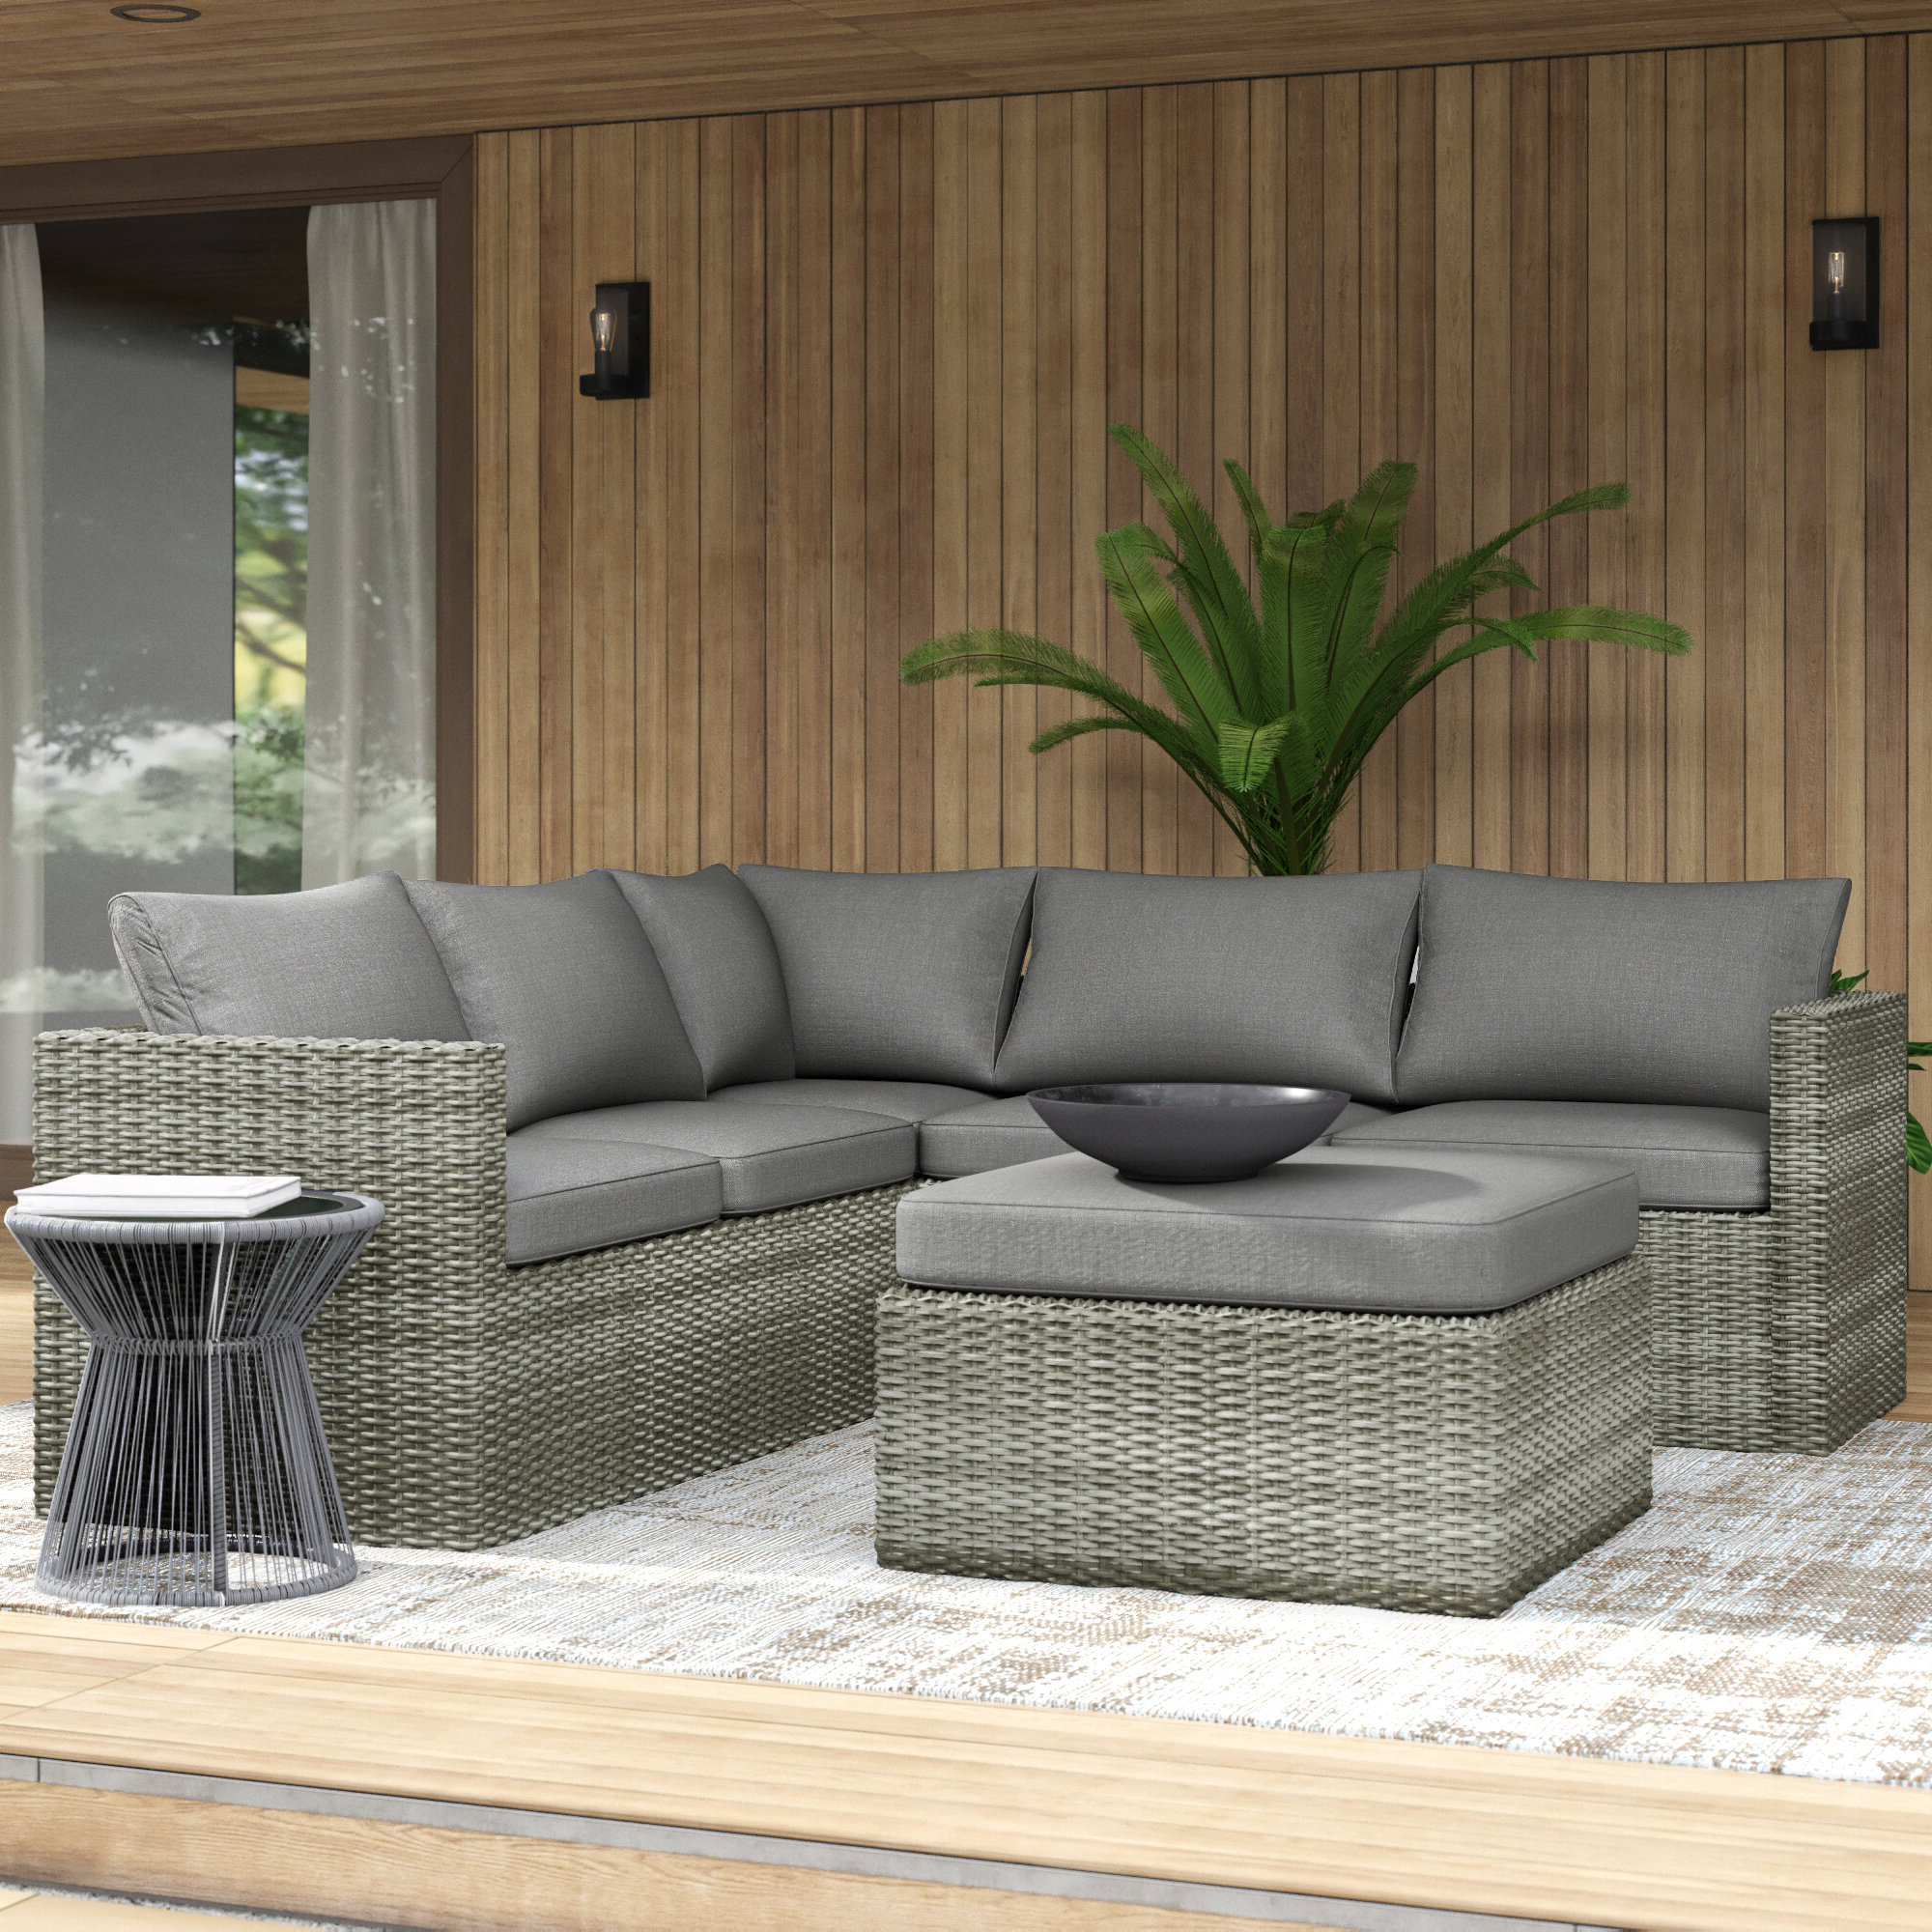 Favorite Madison Avenue Patio Sectionals With Sunbrella Cushions With Regard To Lorentzen Patio Sectional With Cushions (View 5 of 20)